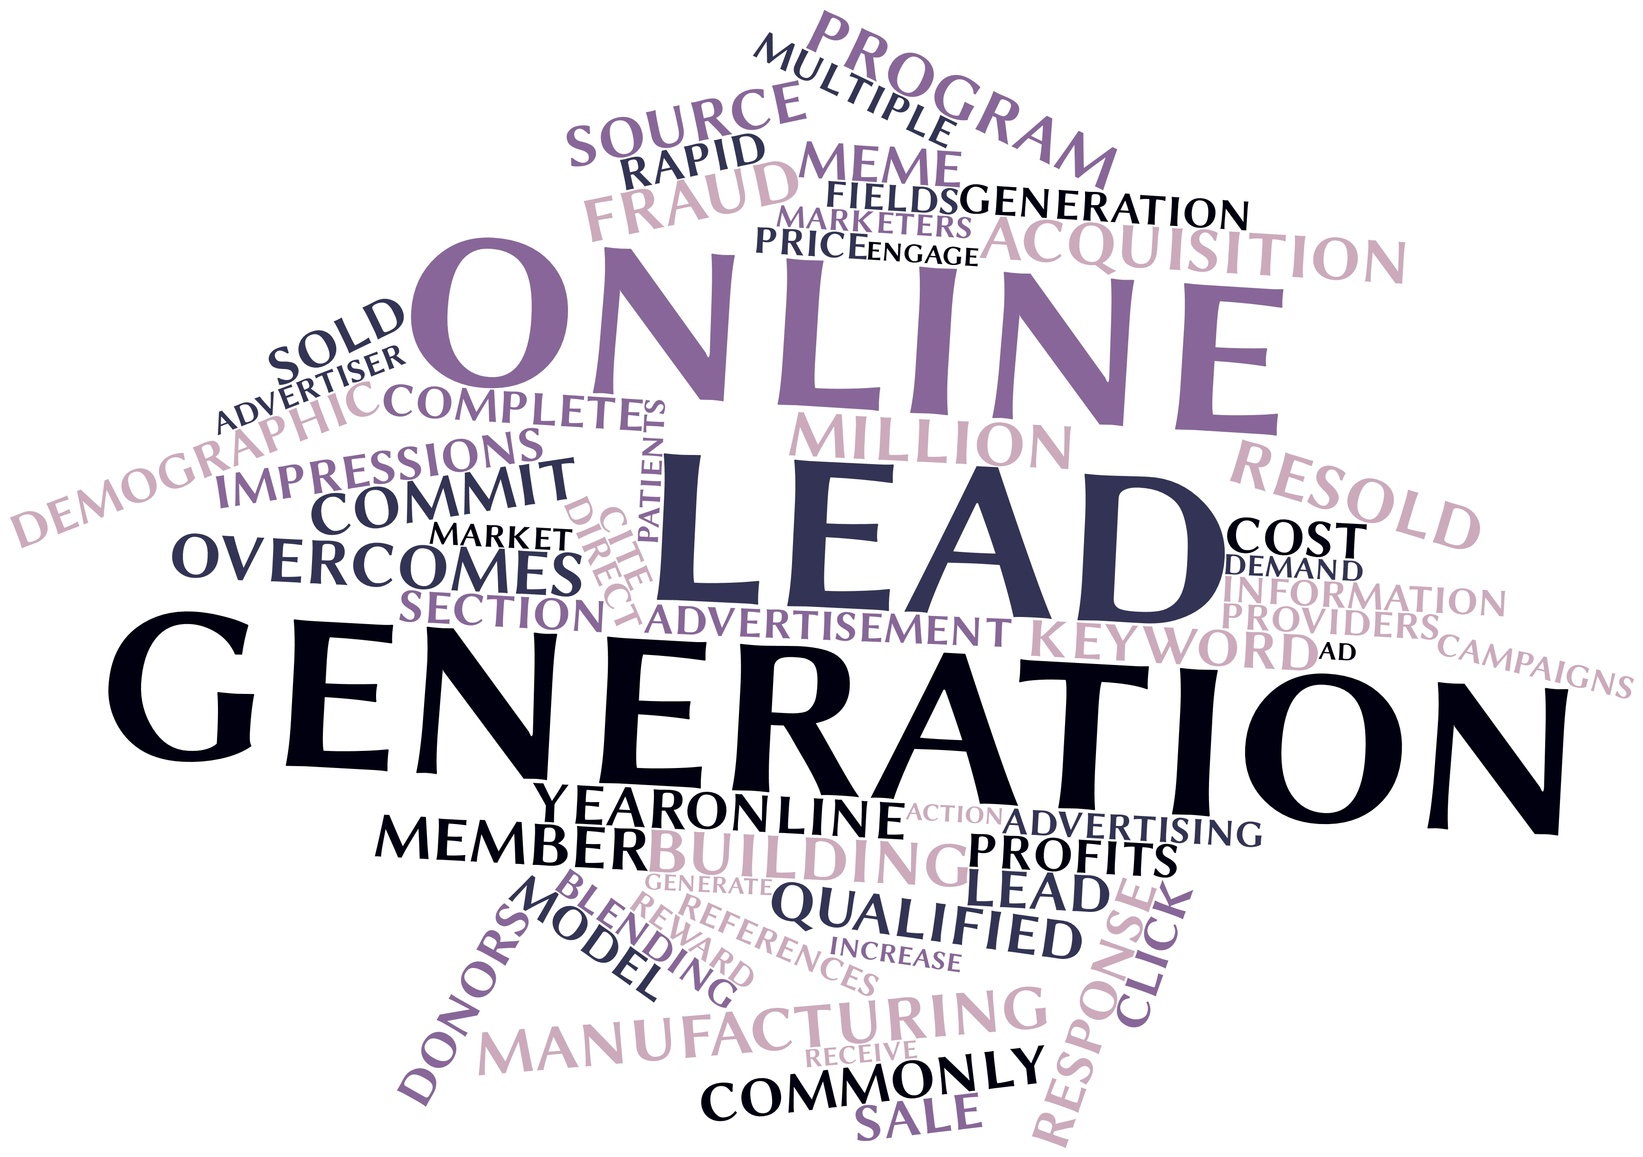 creating lead generation and backlinks